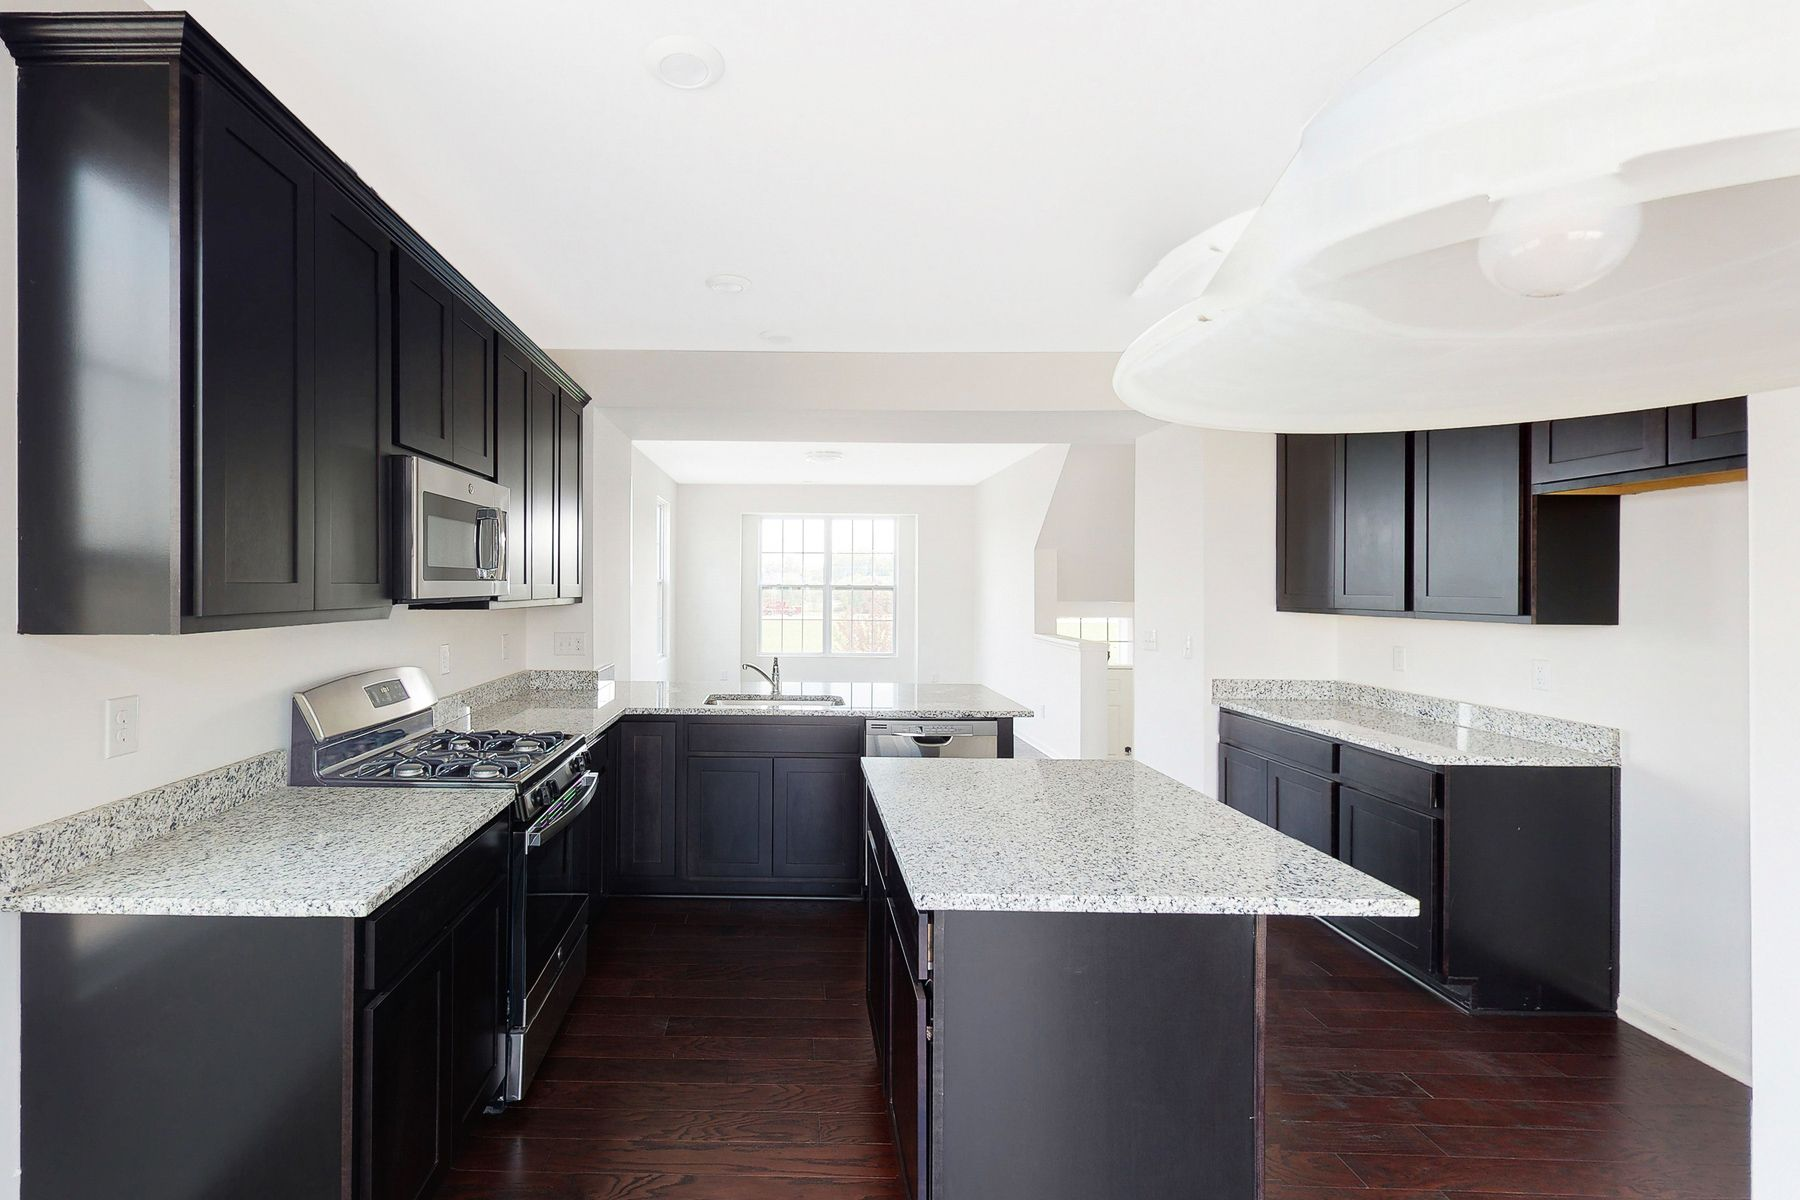 Kitchen featured in the Aria - B End Unit By M/I Homes in Detroit, MI